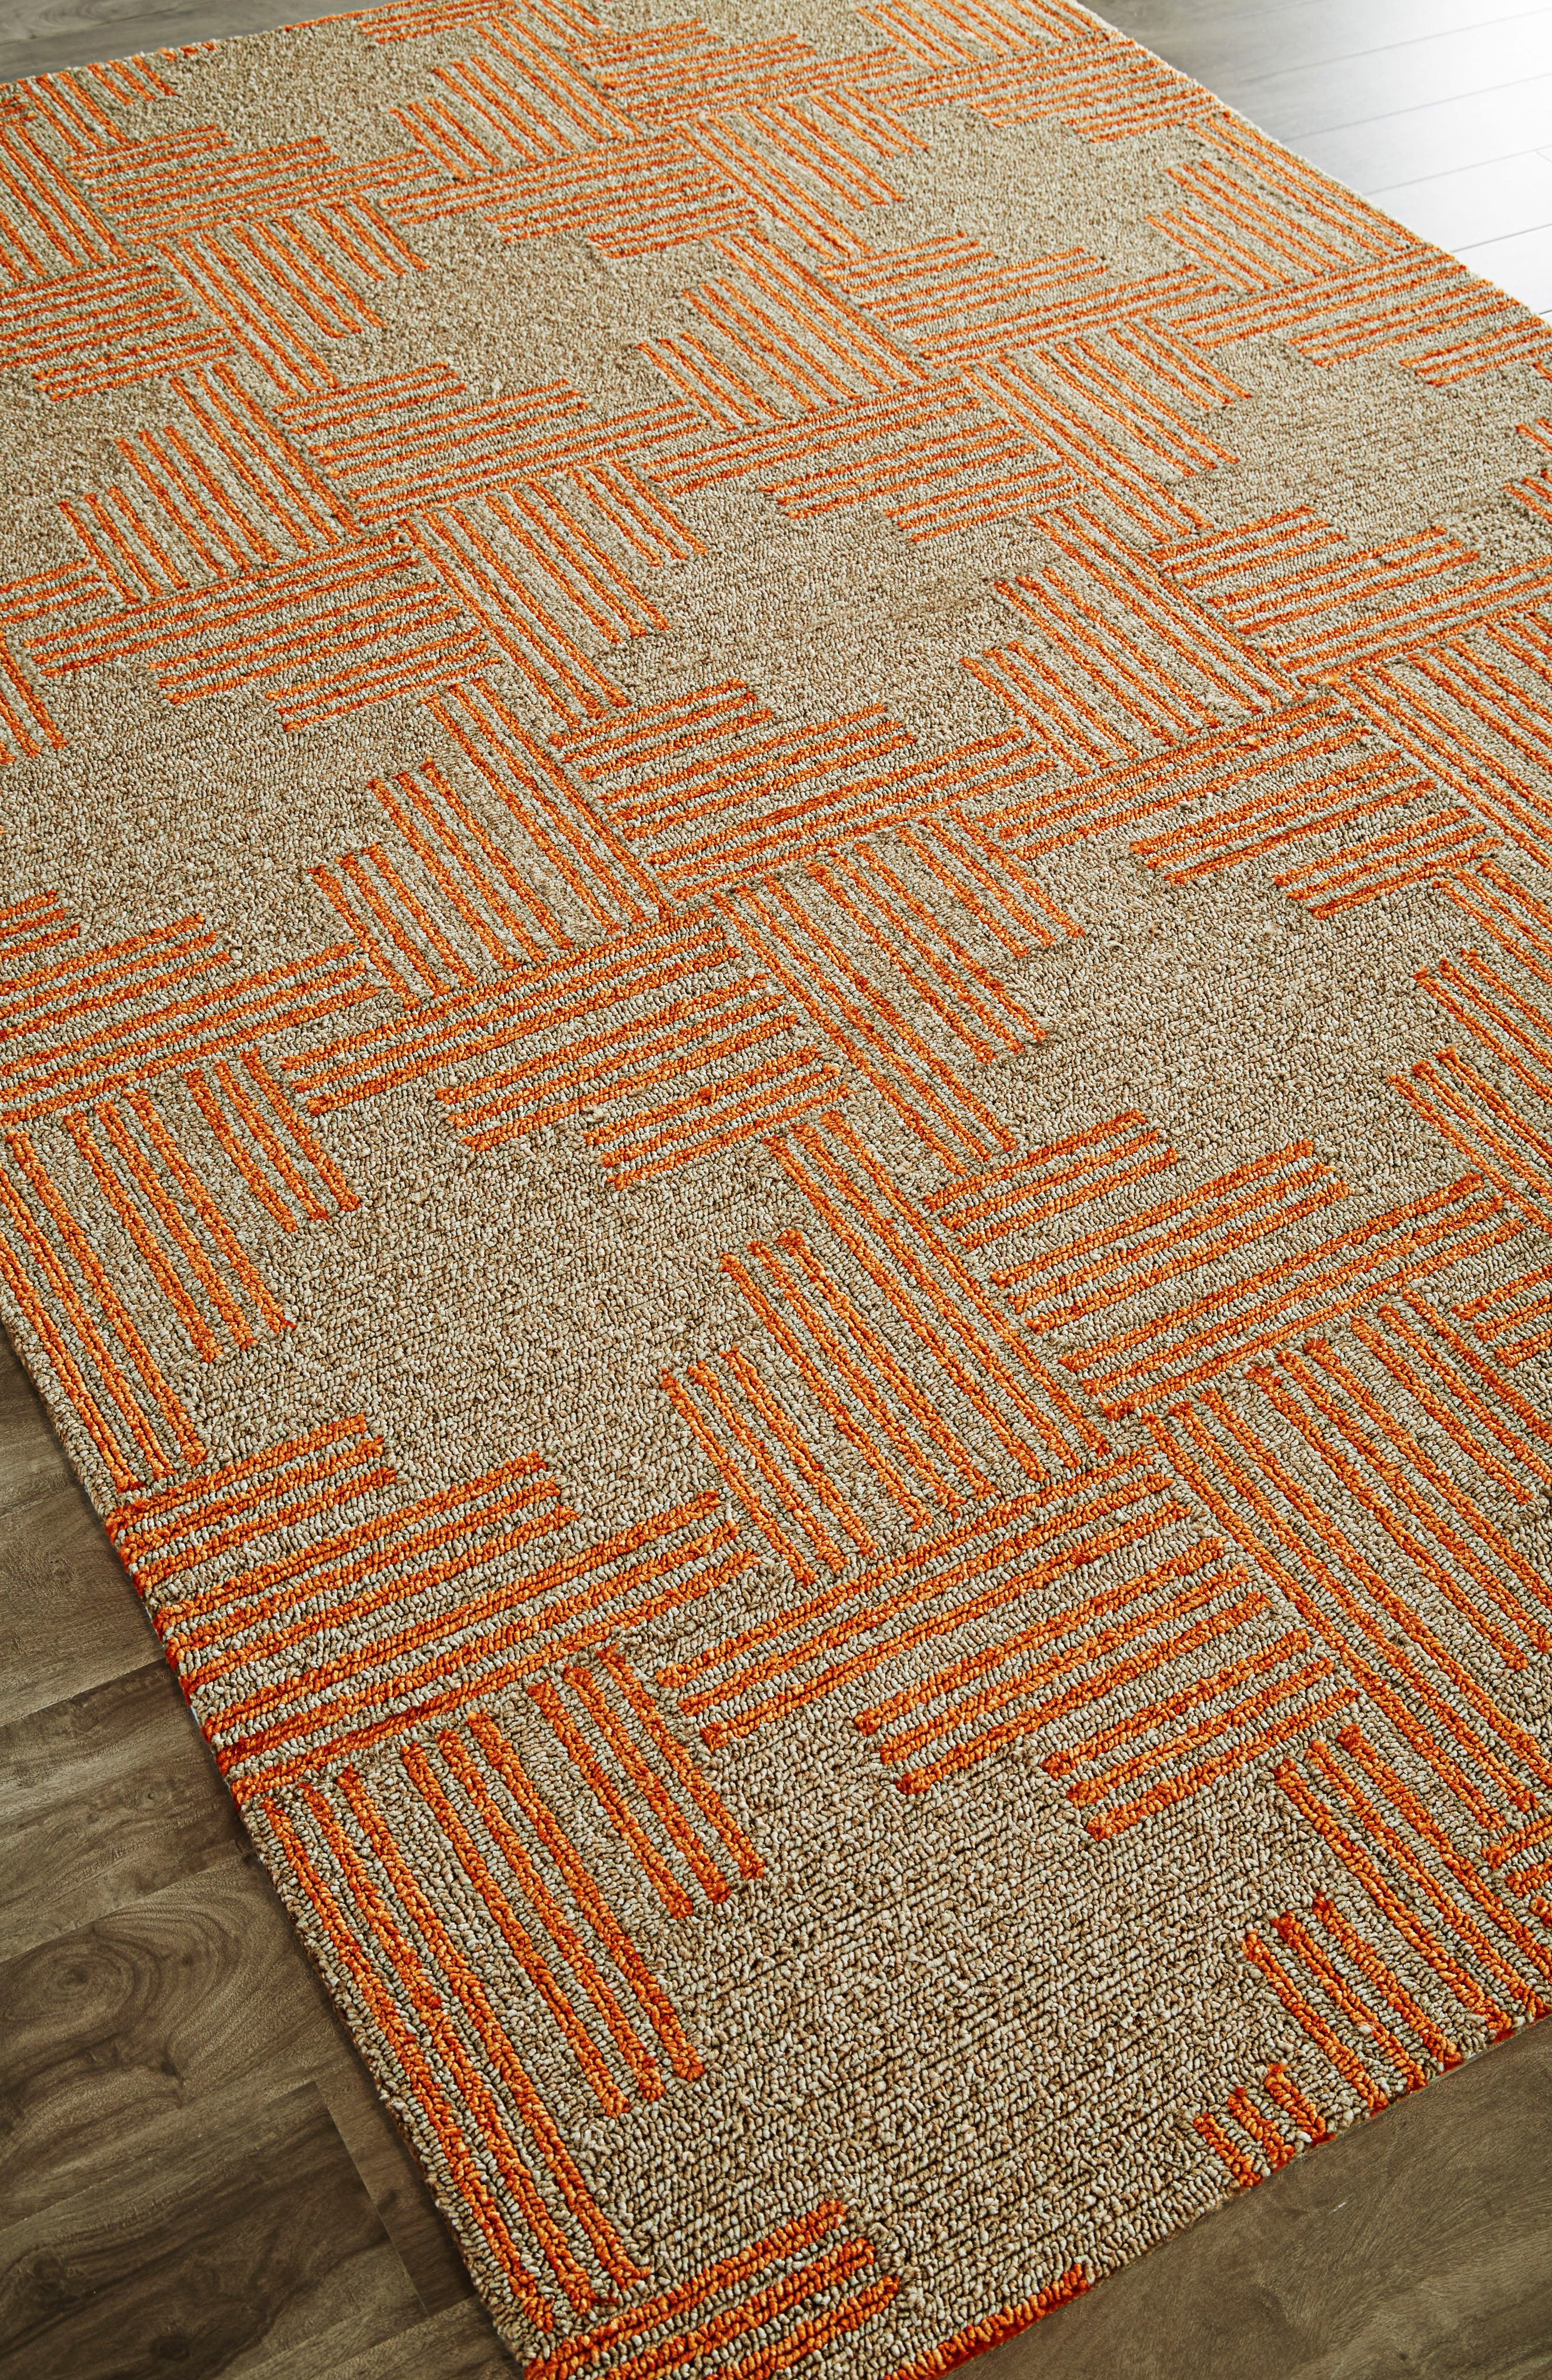 Contemporary Geo Cross Rug,                             Main thumbnail 1, color,                             250